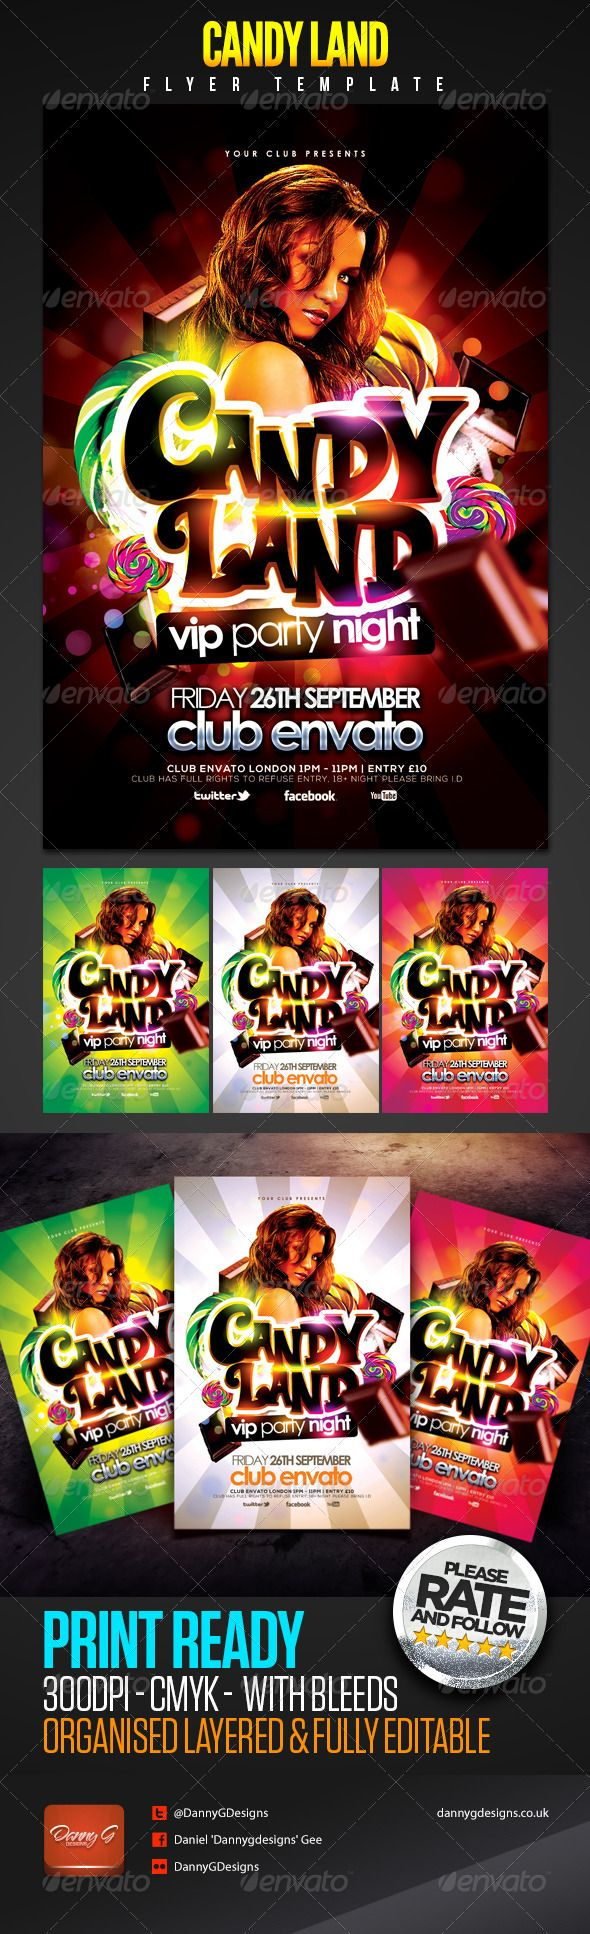 Candy Land Vip Party Night Flyer Psd Template Only Available Here Http